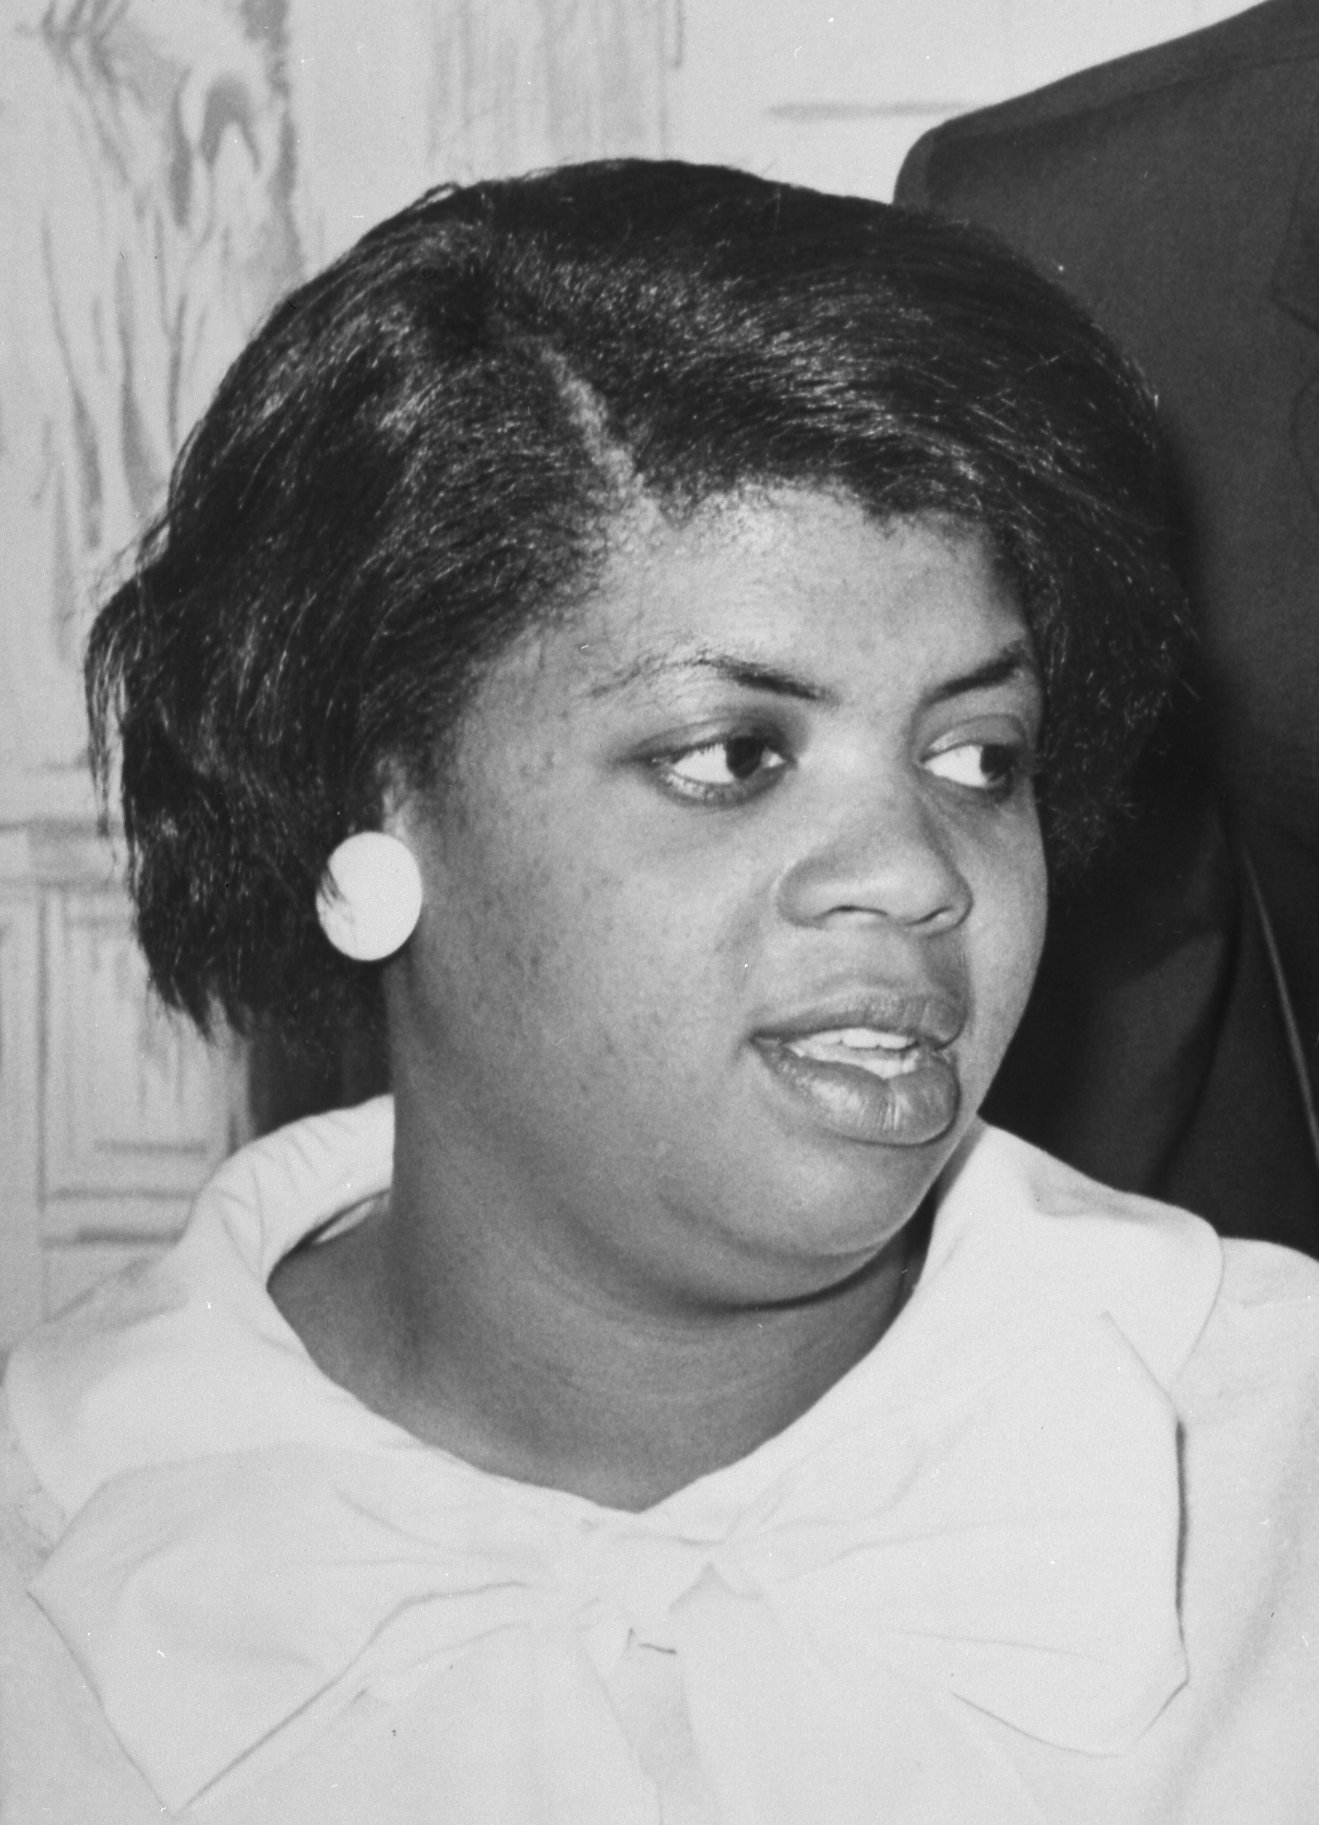 Linda Brown Smith at press conference, Americana Hotel, Arlington, Virginia, June 9, 1964